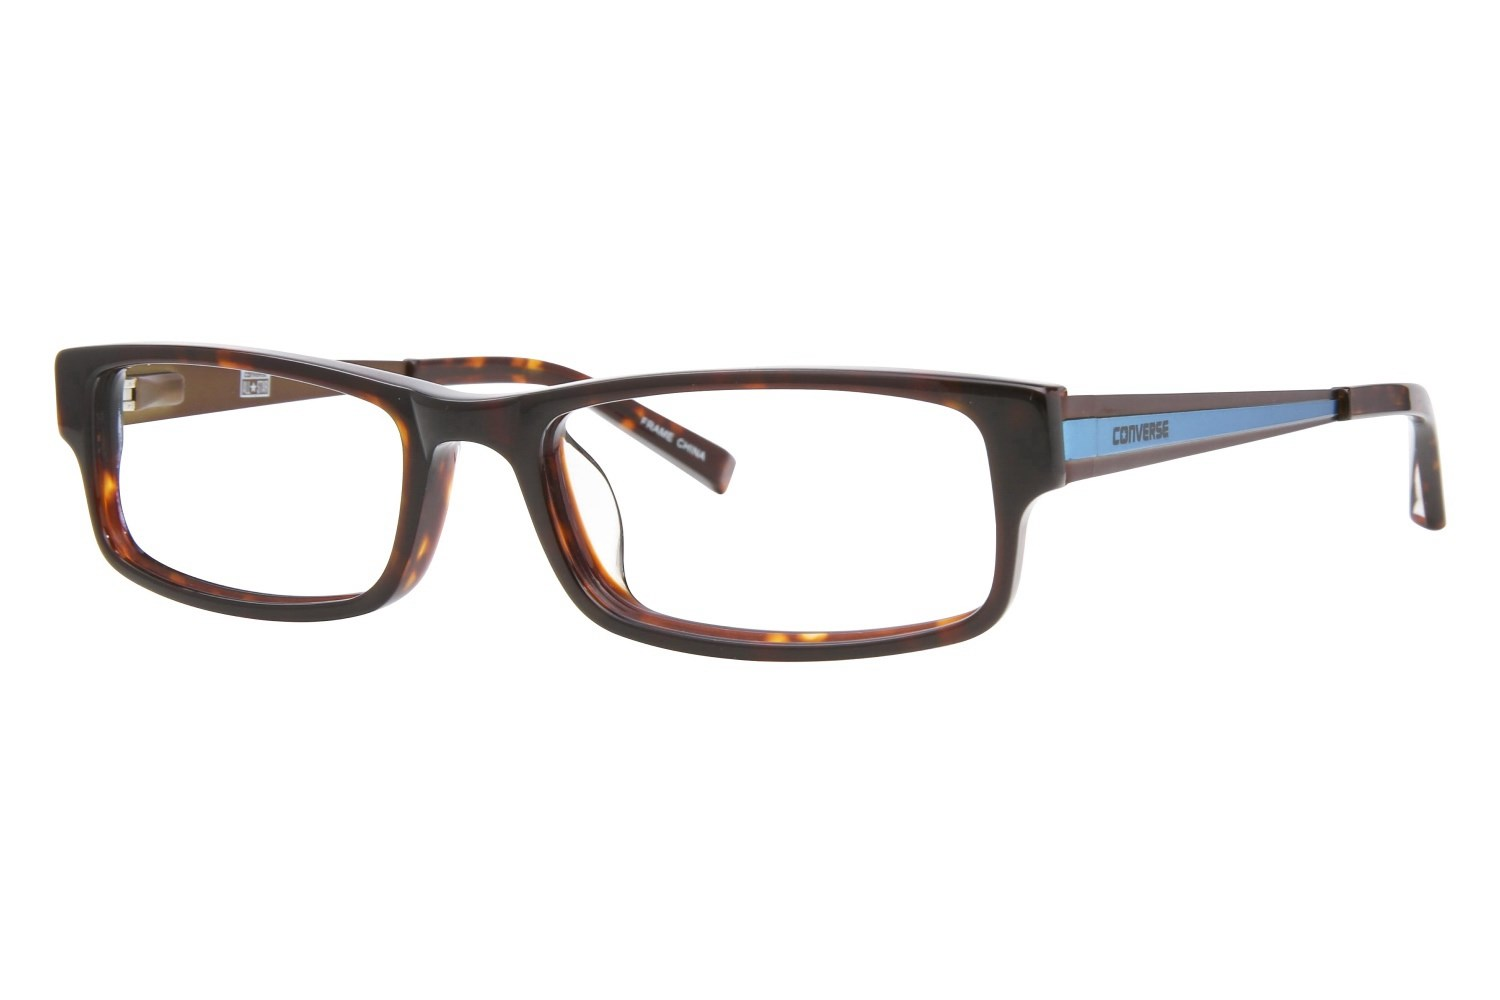 converse-q018-prescription-eyeglasses